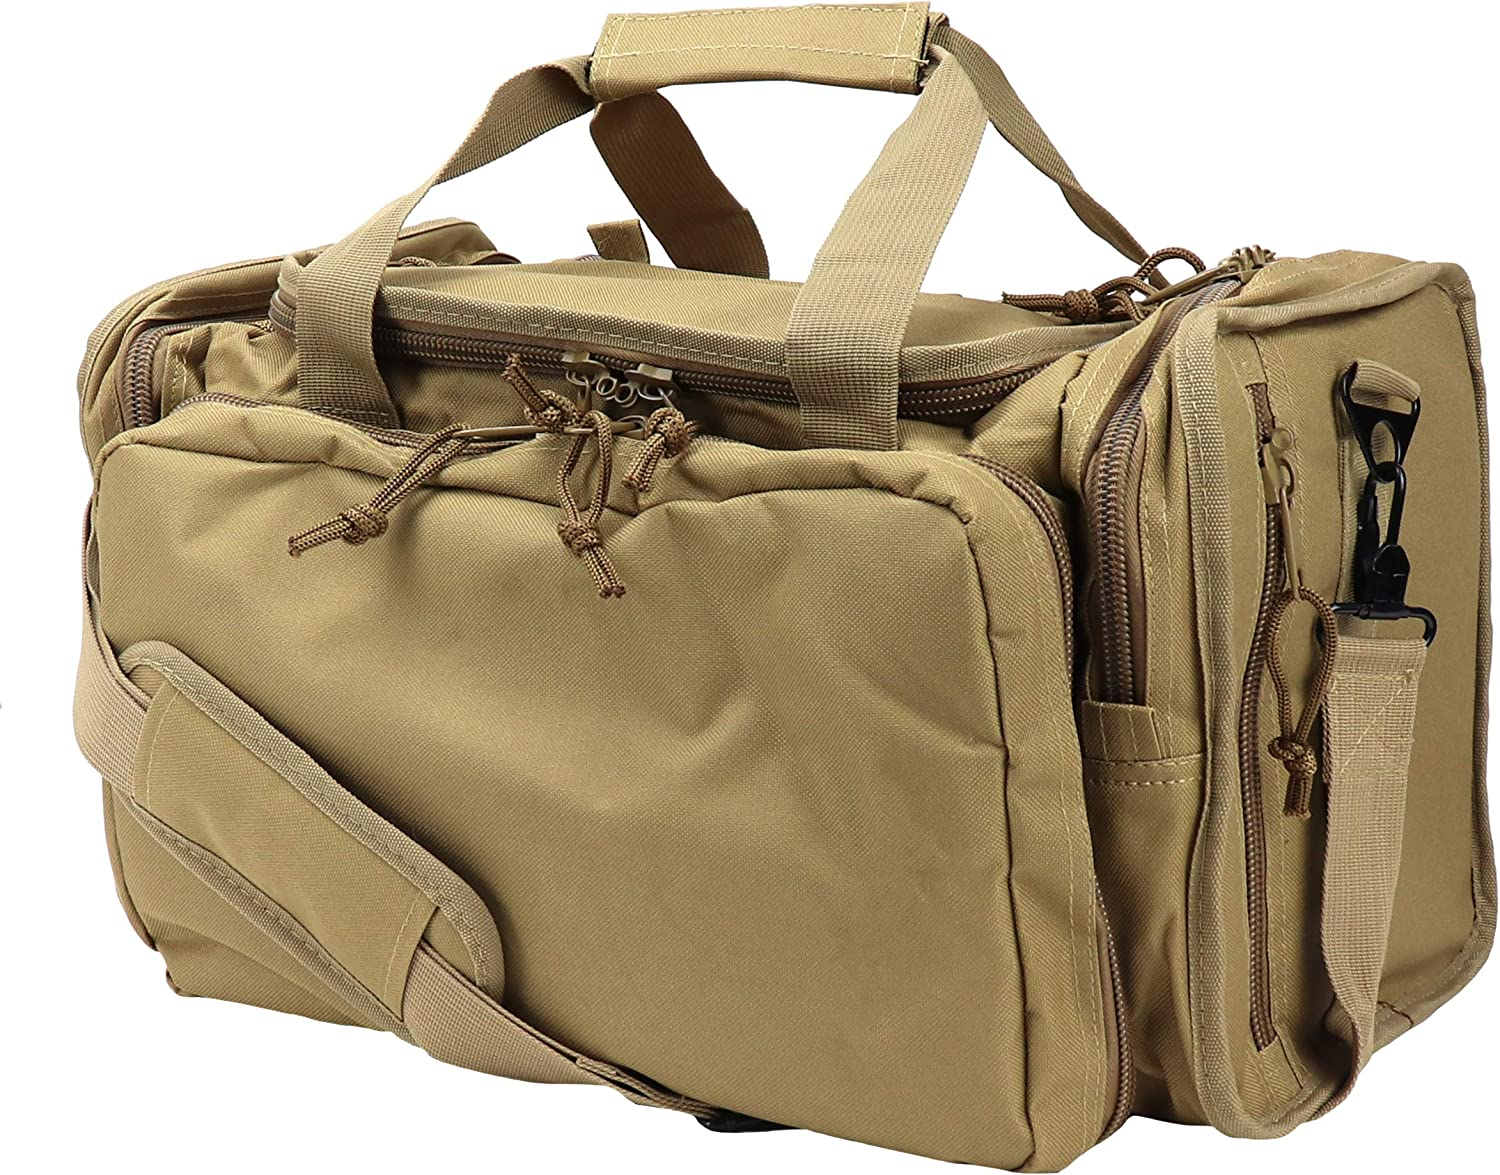 OSAGE RIVER Tactical Range Bag for Handguns and Hunting, Travel Duffel